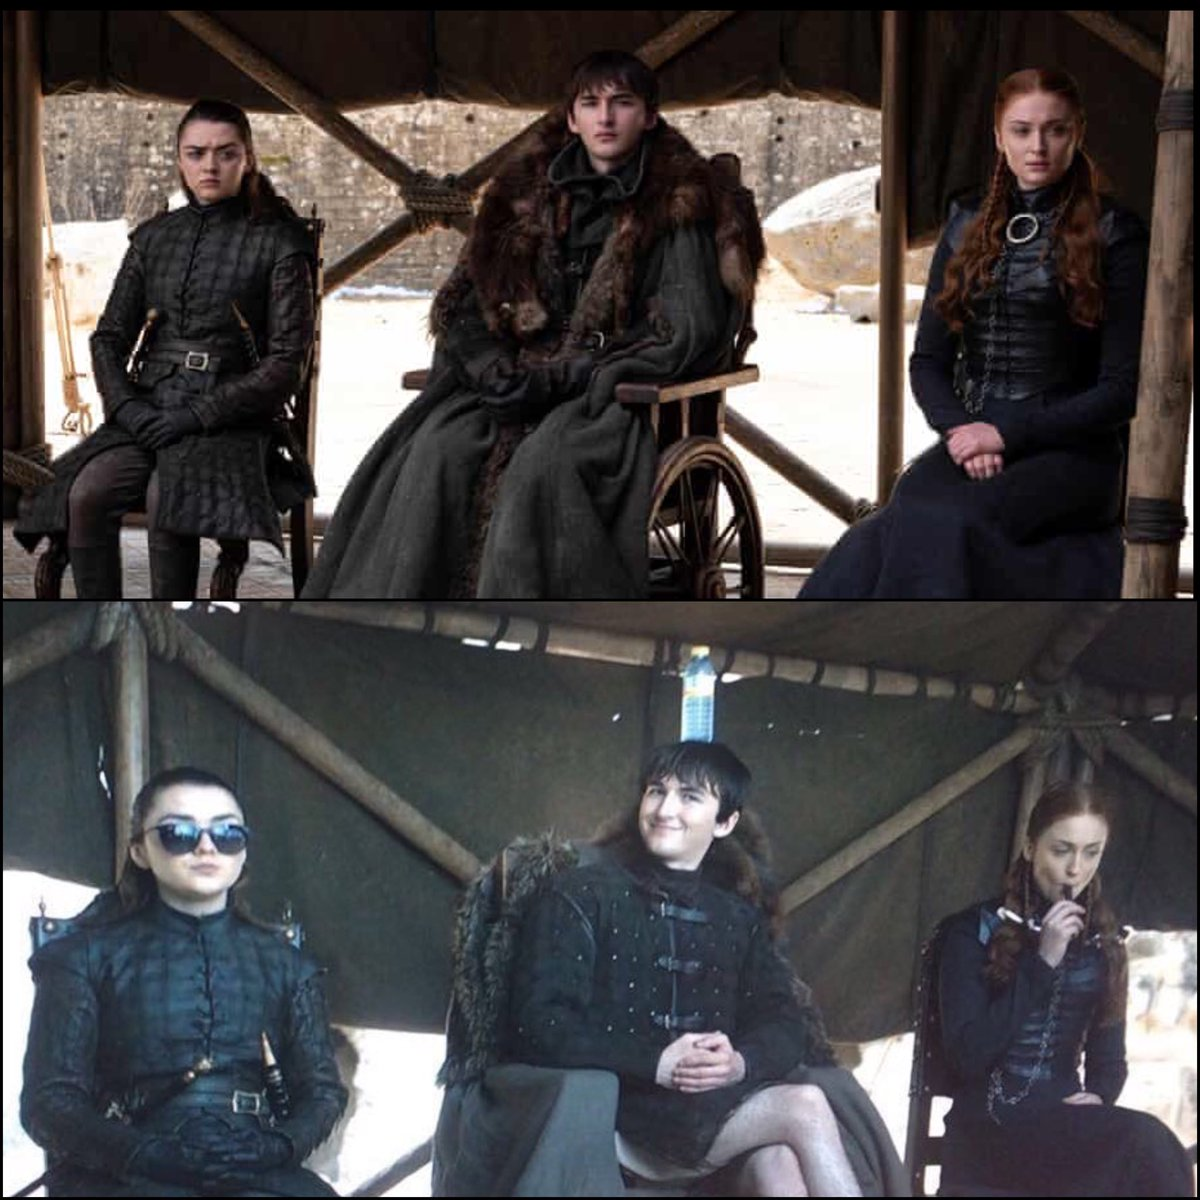 Arya, Bran and Sansa VS @Maisie_Williams , @Isaac_H_Wright  and @SophieT  #GameOfThrones #TheIronThrone #TheFinalEpisode <br>http://pic.twitter.com/P8HwZ1N3Vu